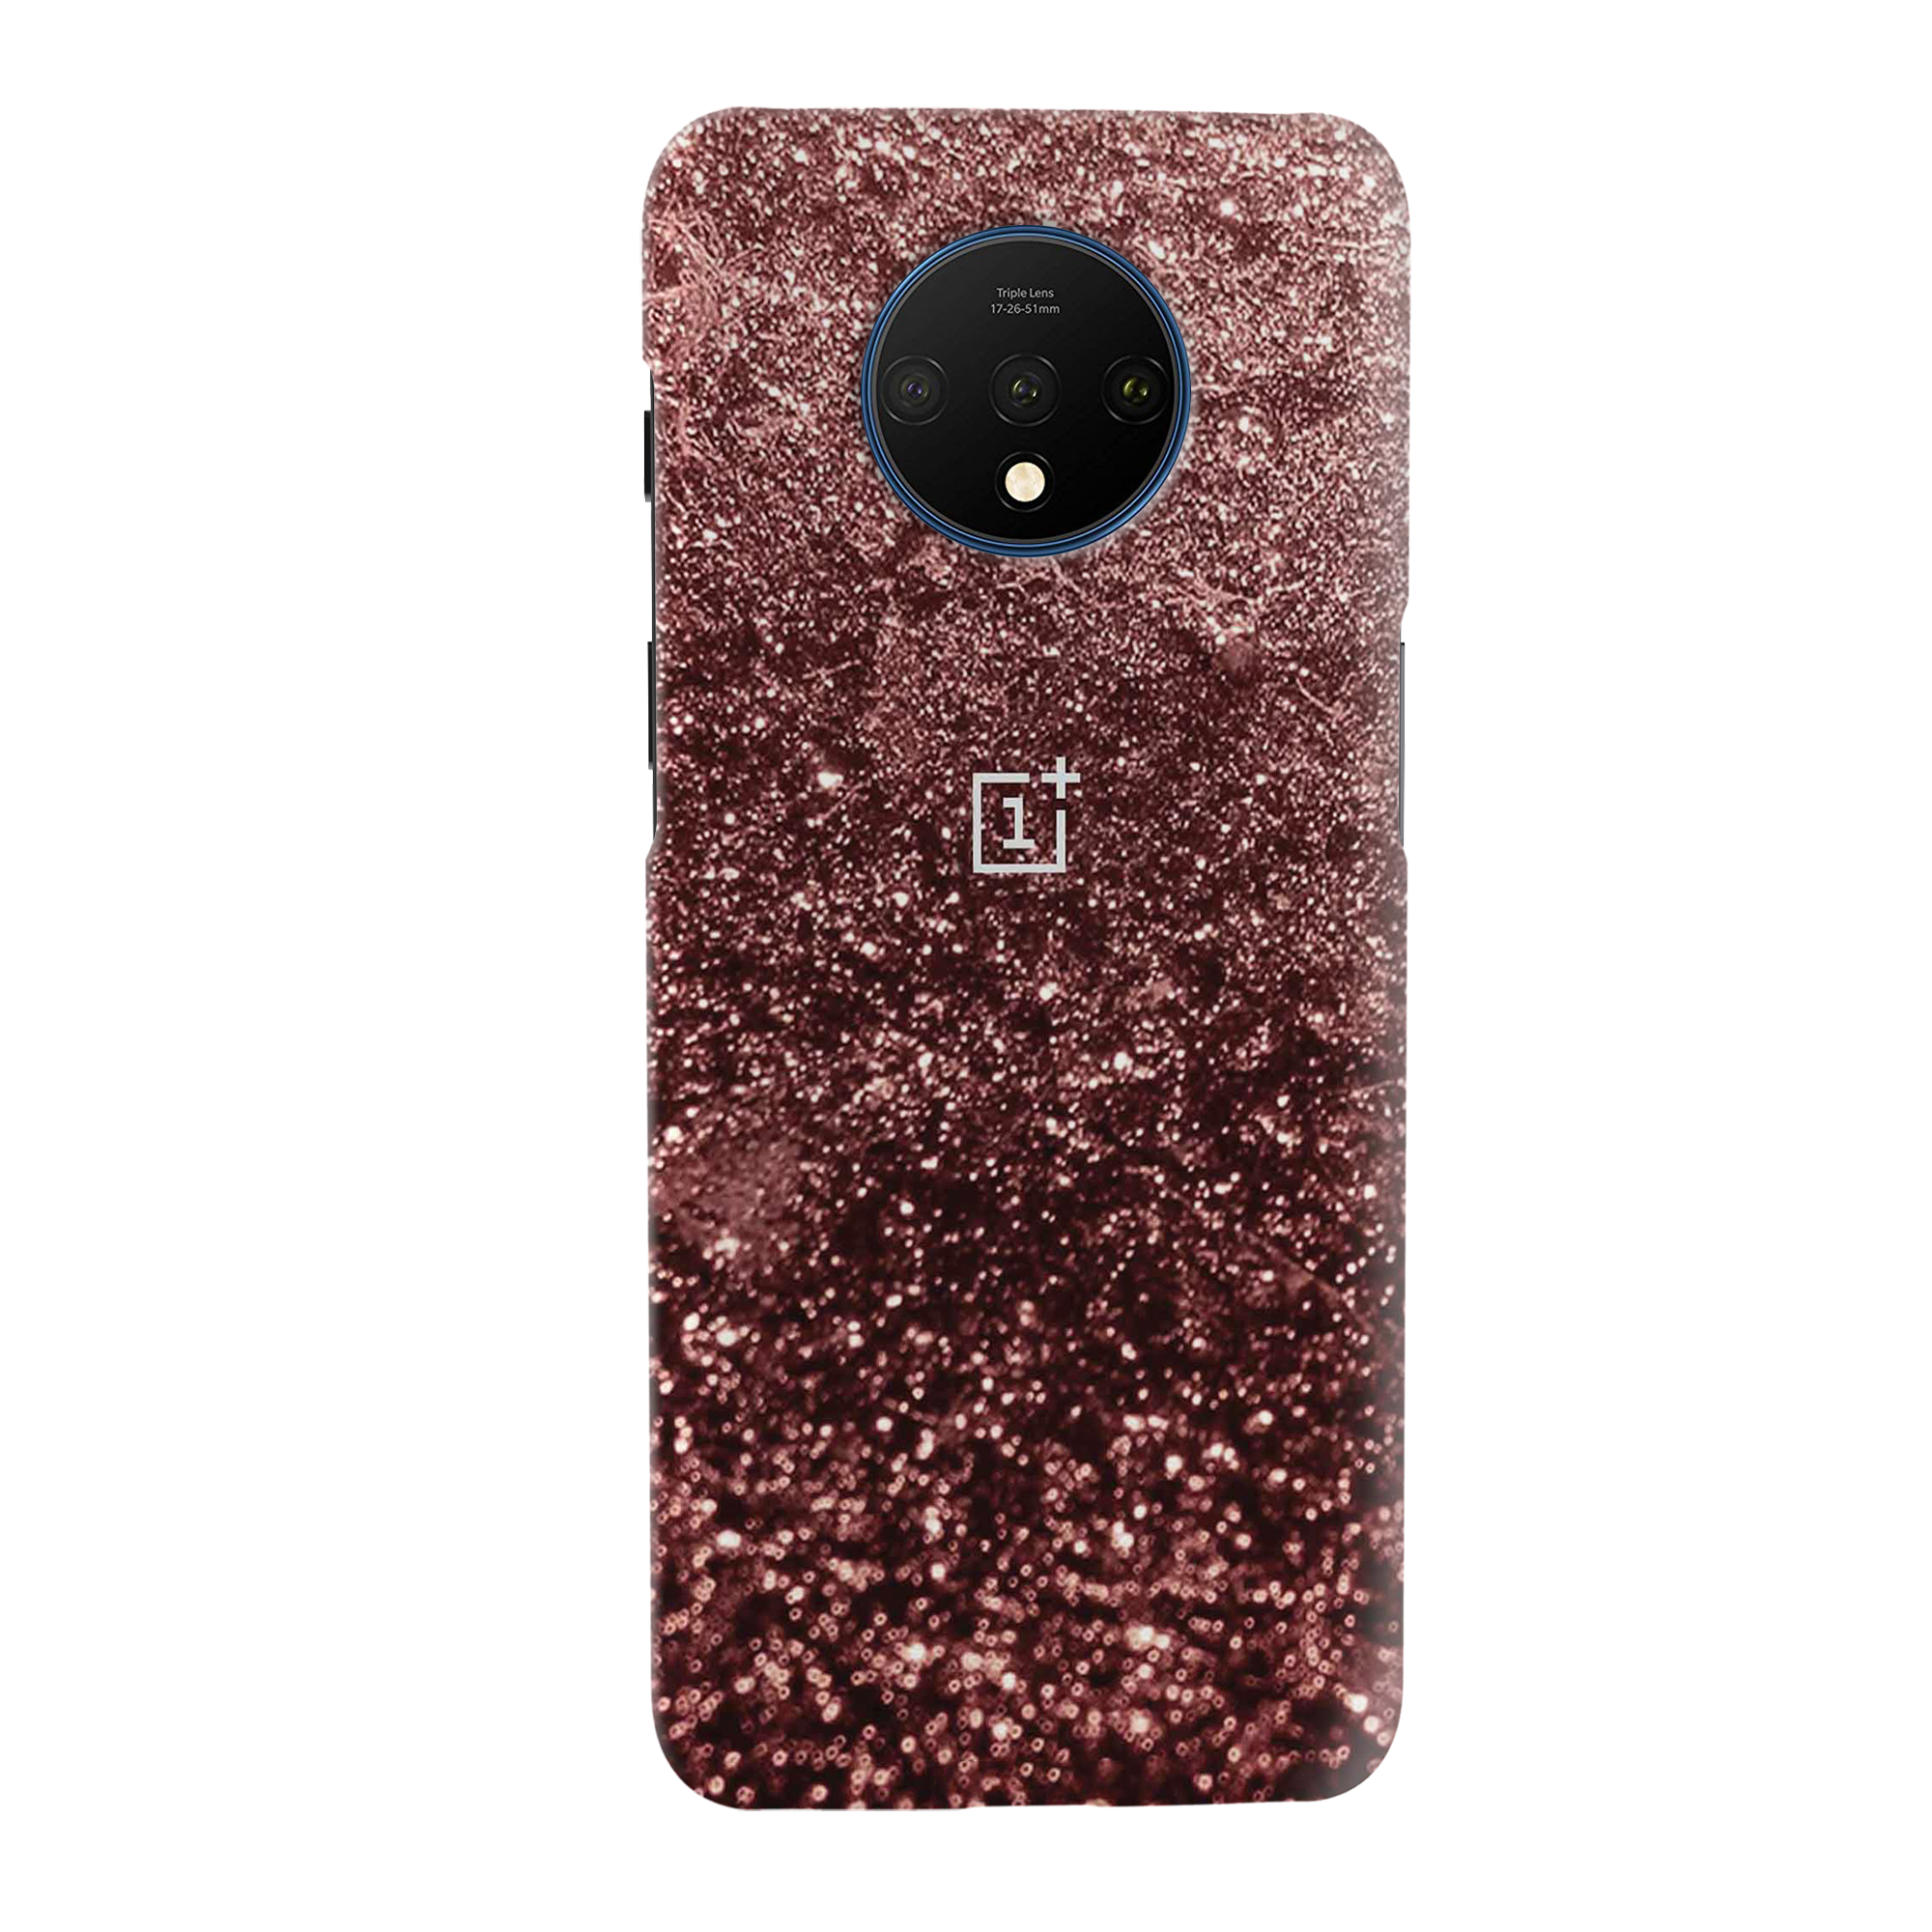 Copper Slim Case And Cover For OnePlus 7T